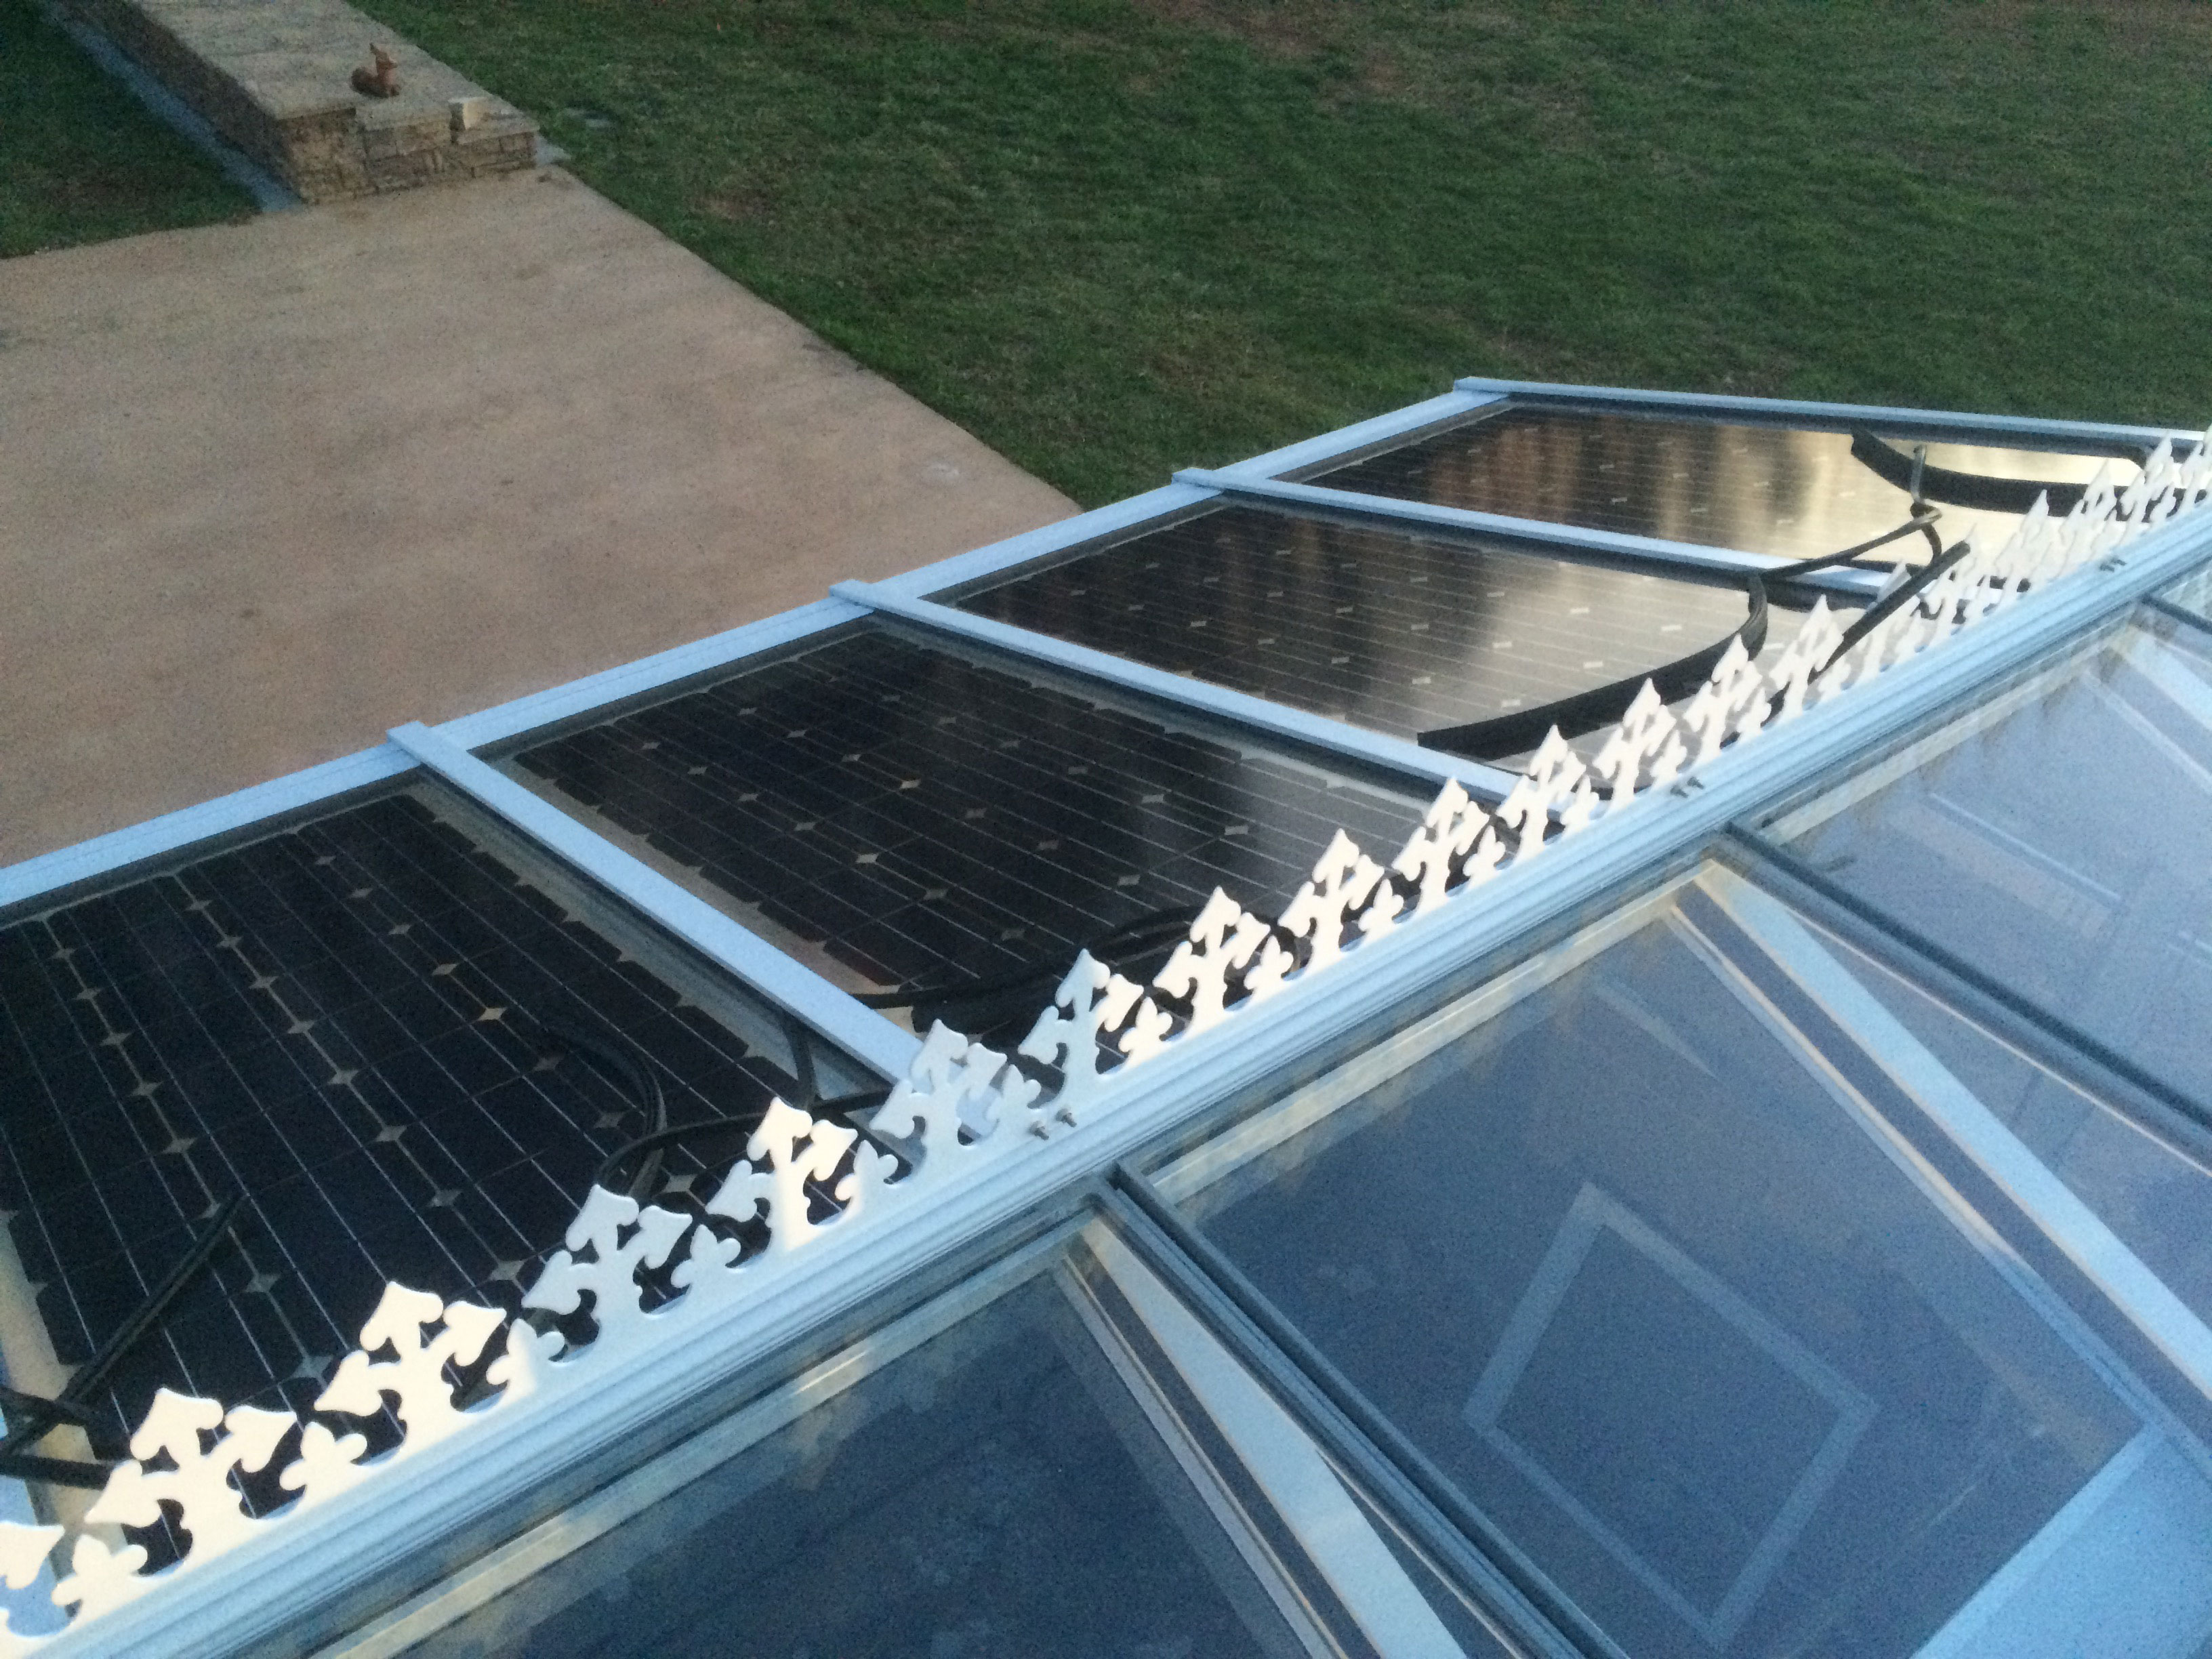 Solar Canopies Awning Systems Wiring In Cells Might Stop Reflecting Light One Up Project By Powered Sunrooms